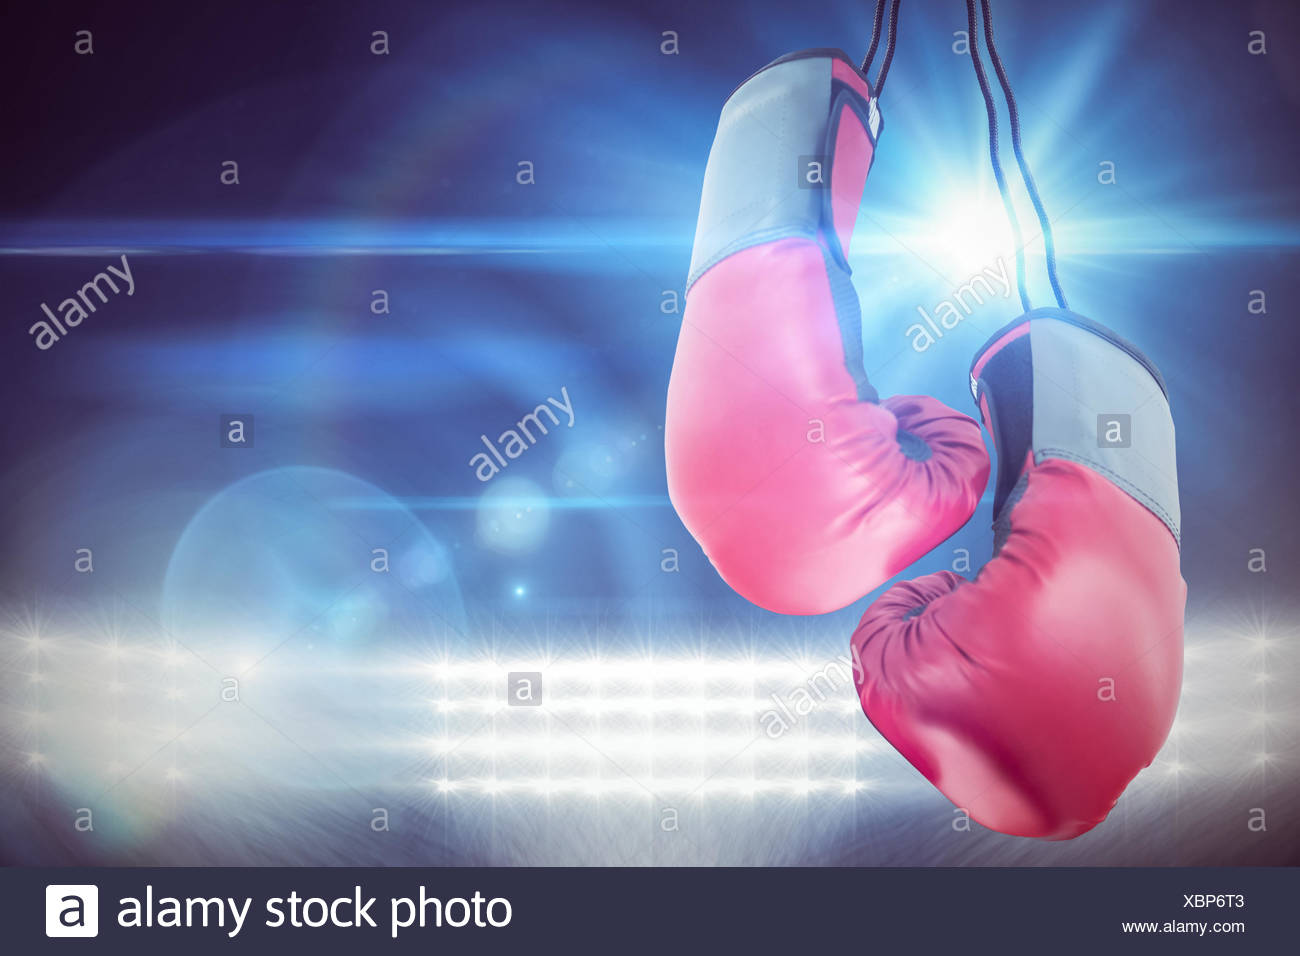 Boxing gloves attached - Stock Image